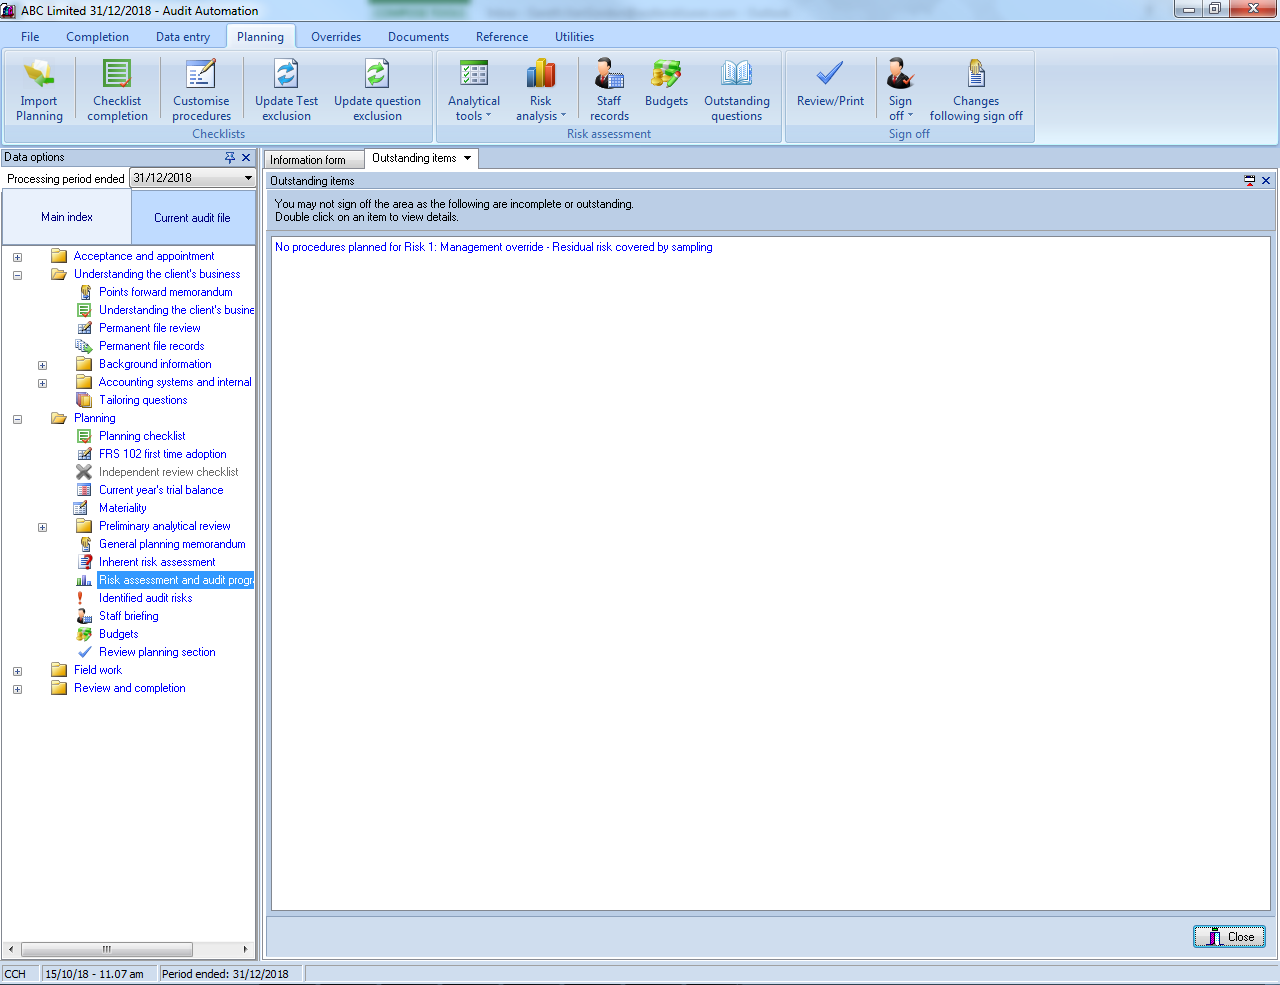 CCH Audit Automation - Planning sign off screenshot